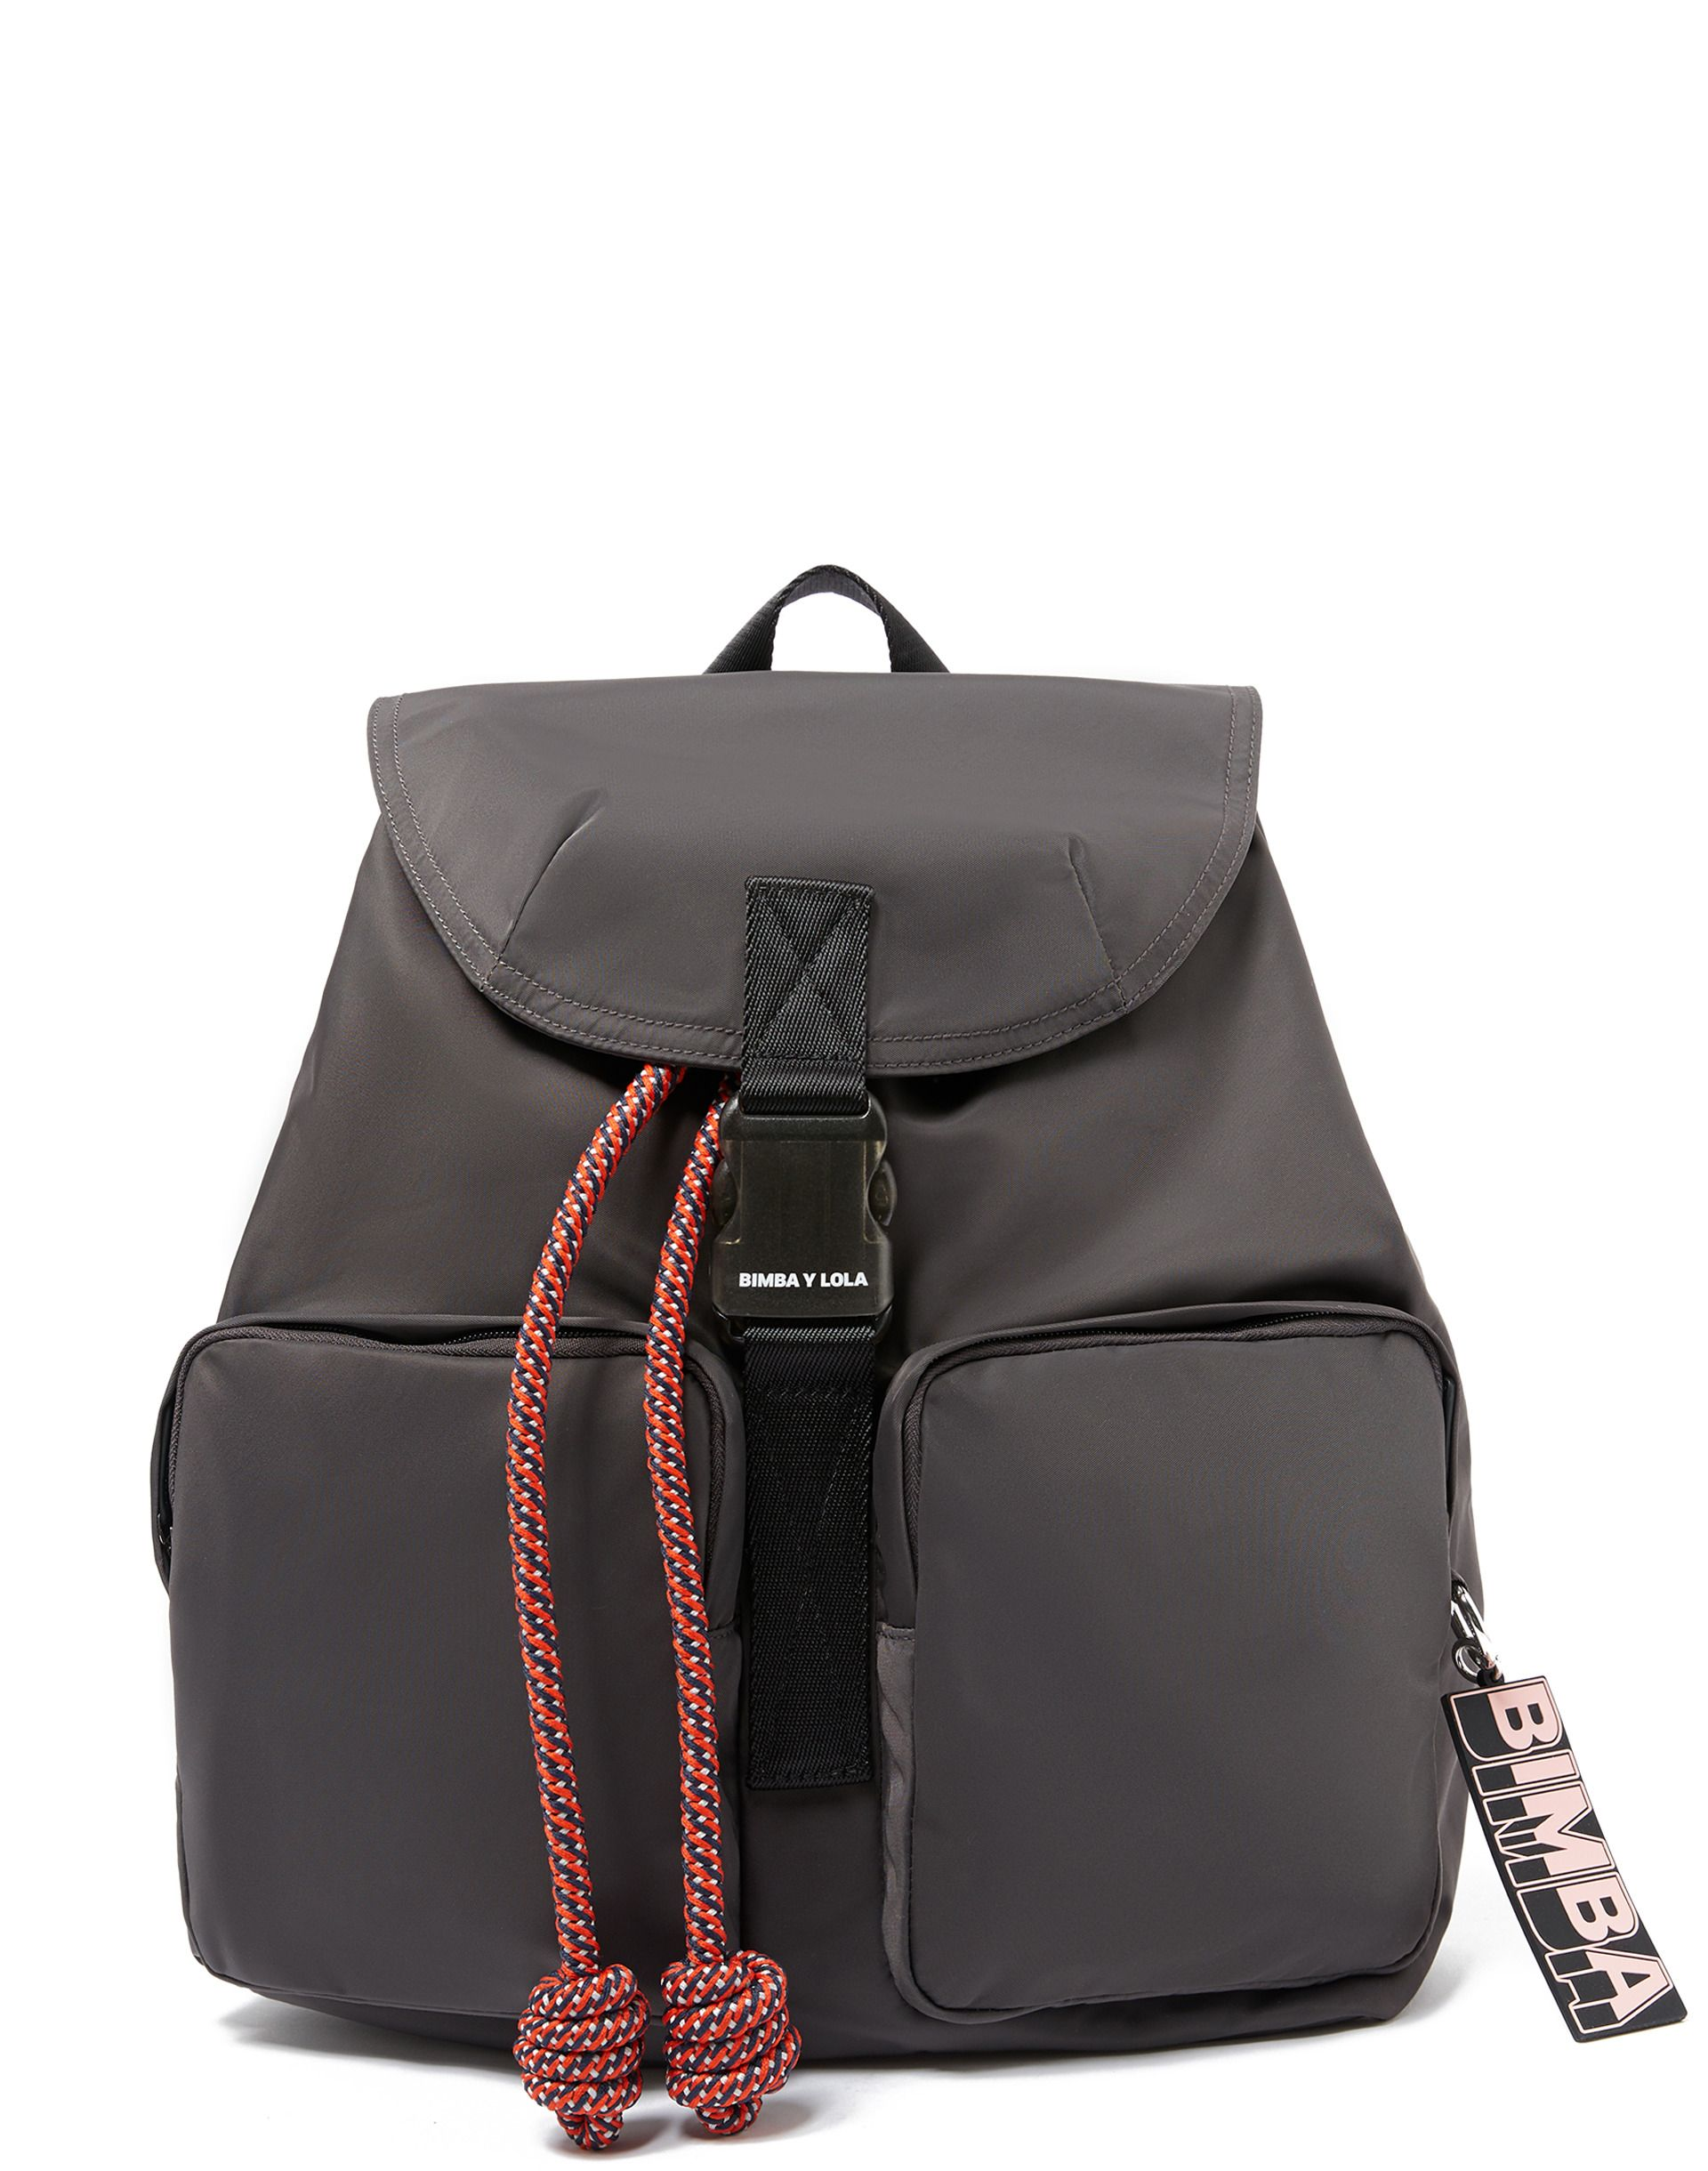 Mochila Grande Gris Backpacks Bags Fashion